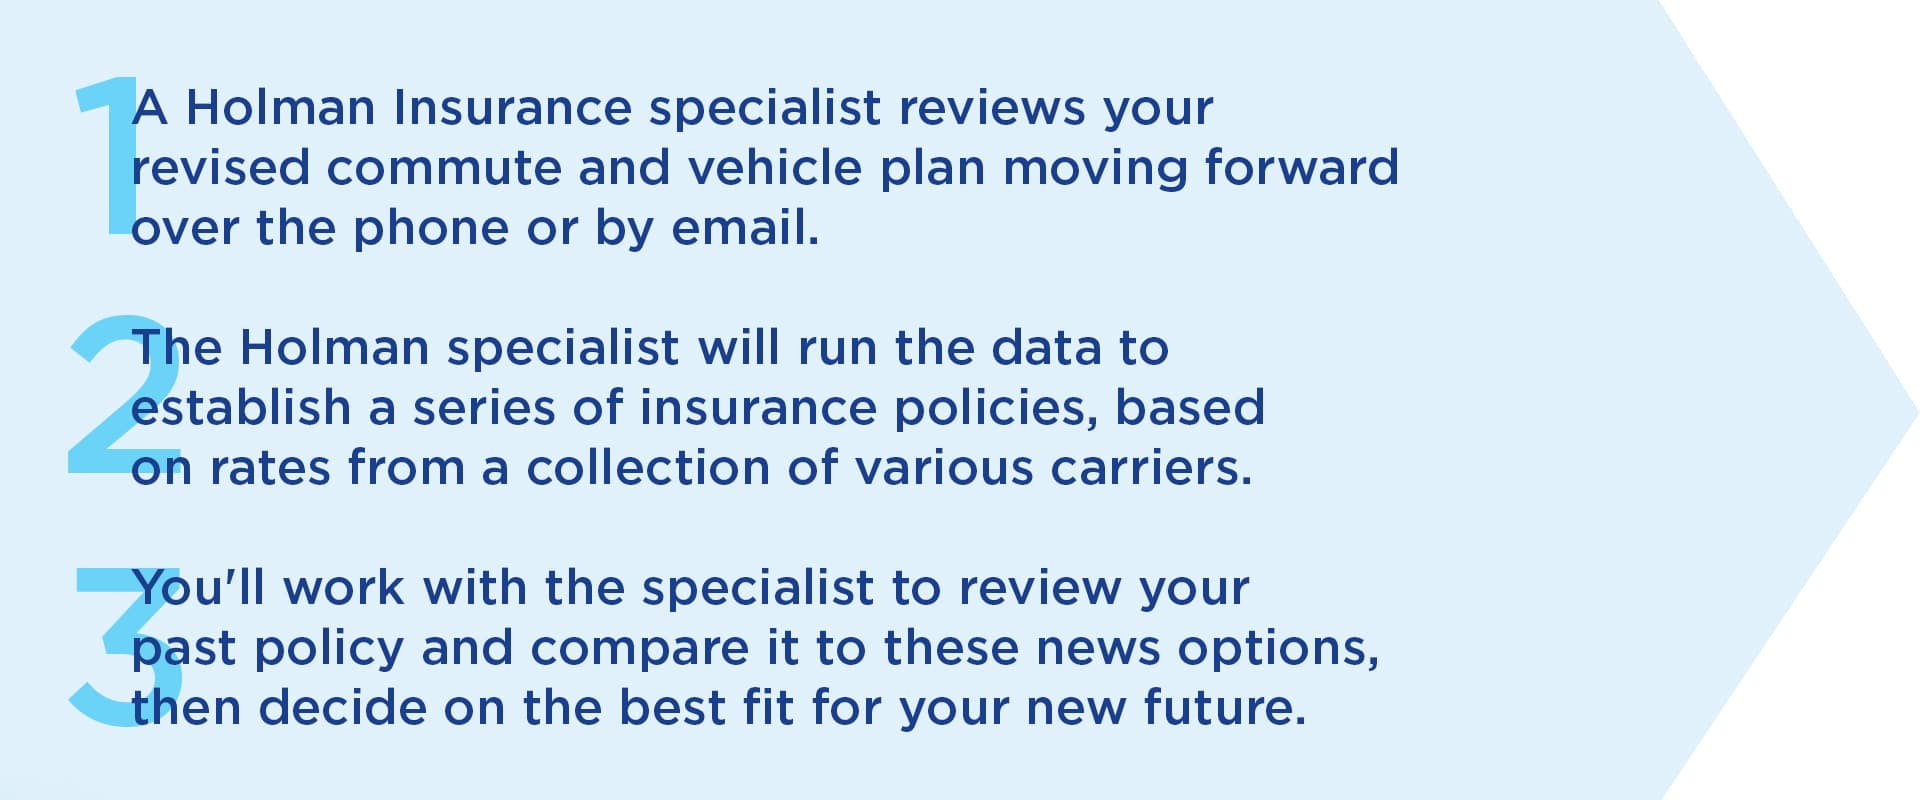 1. A Holman Insurance specialist reviews your revised commute and vehicle plan moving forward over the phone or by email. 2. The Holman specialist will run the data to establish a series of insurance policies, based on rates from a collection of various carriers. 3. You'll work with the specialist to review your past policy and compare it to these news options, then decide on the best fit for your new future.